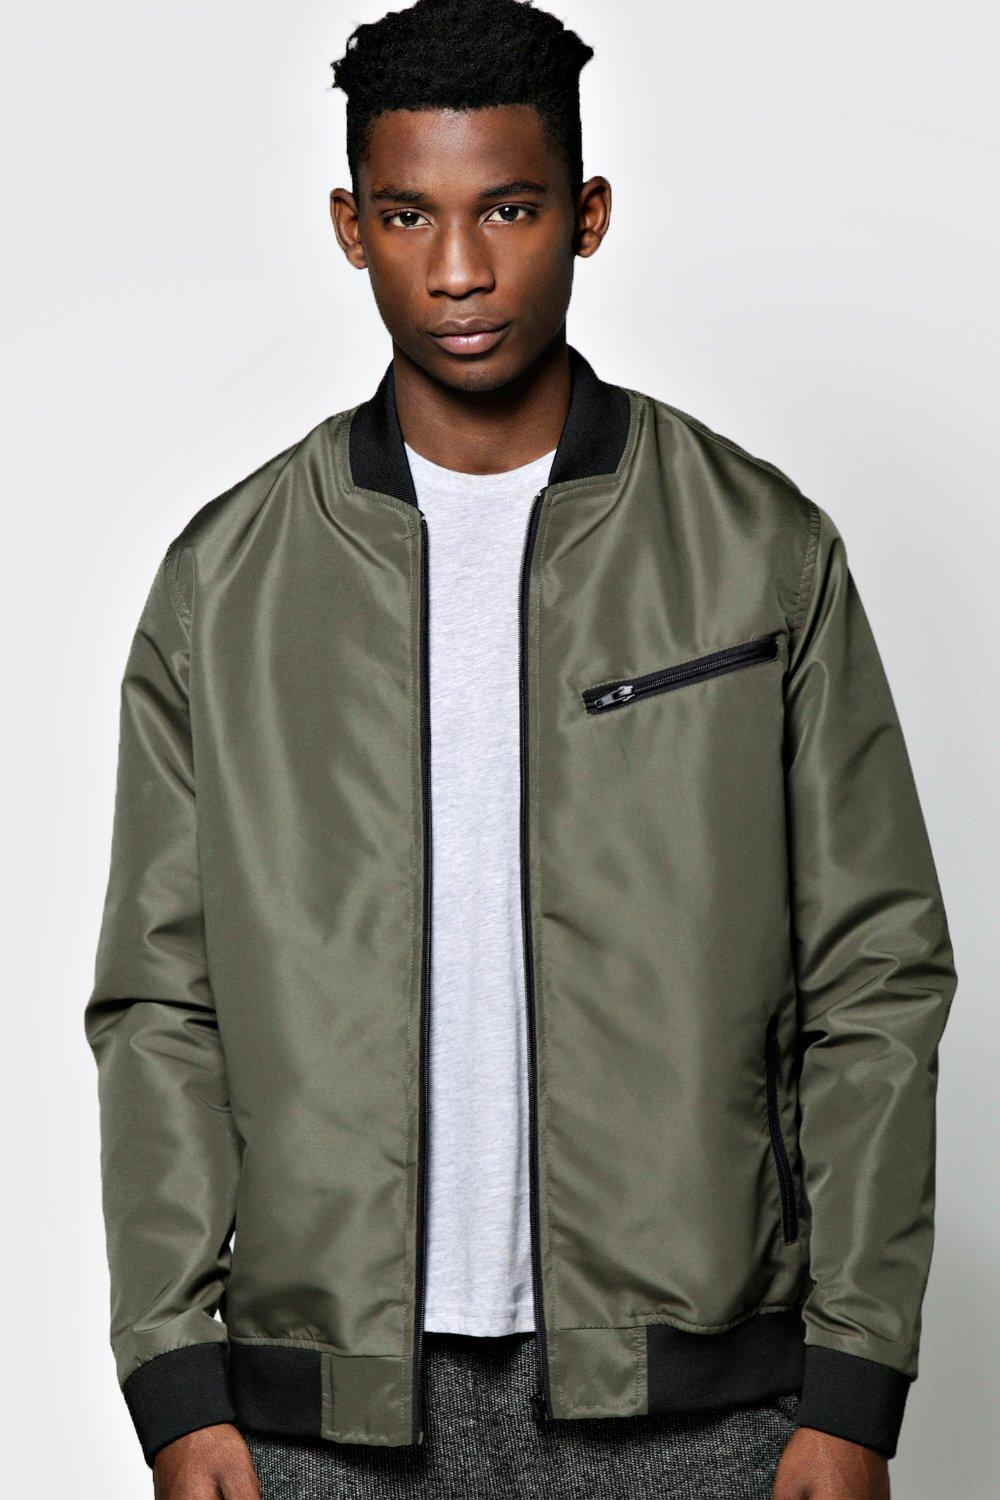 boohoo Nylon Bomber Jacket With Zip Pocket - khaki